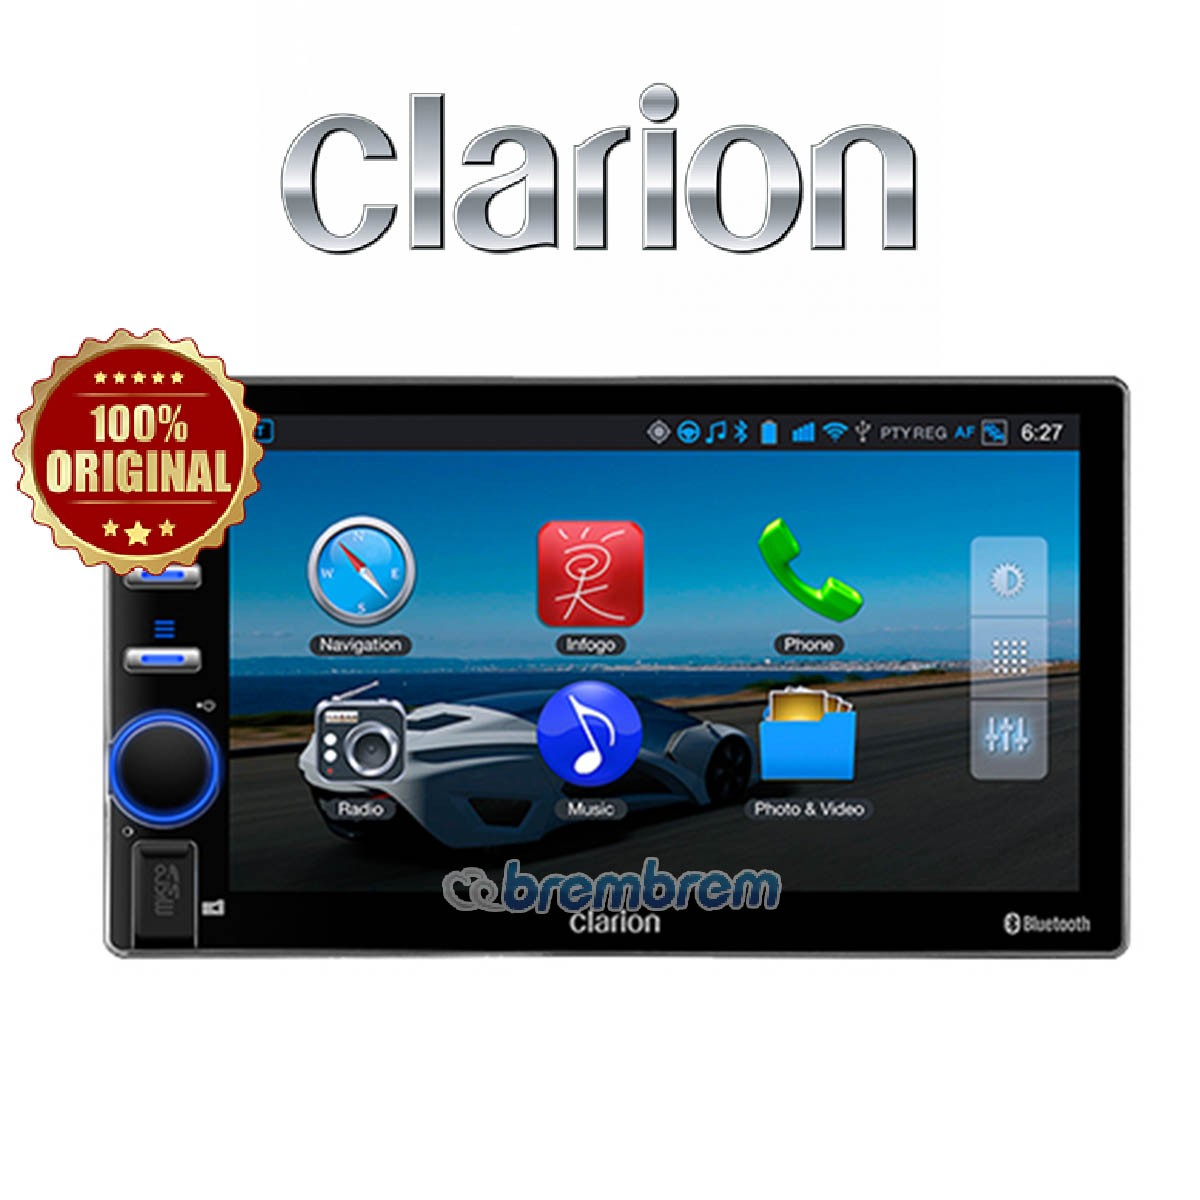 CLARION AX1 - HEAD UNIT DOUBLE DIN